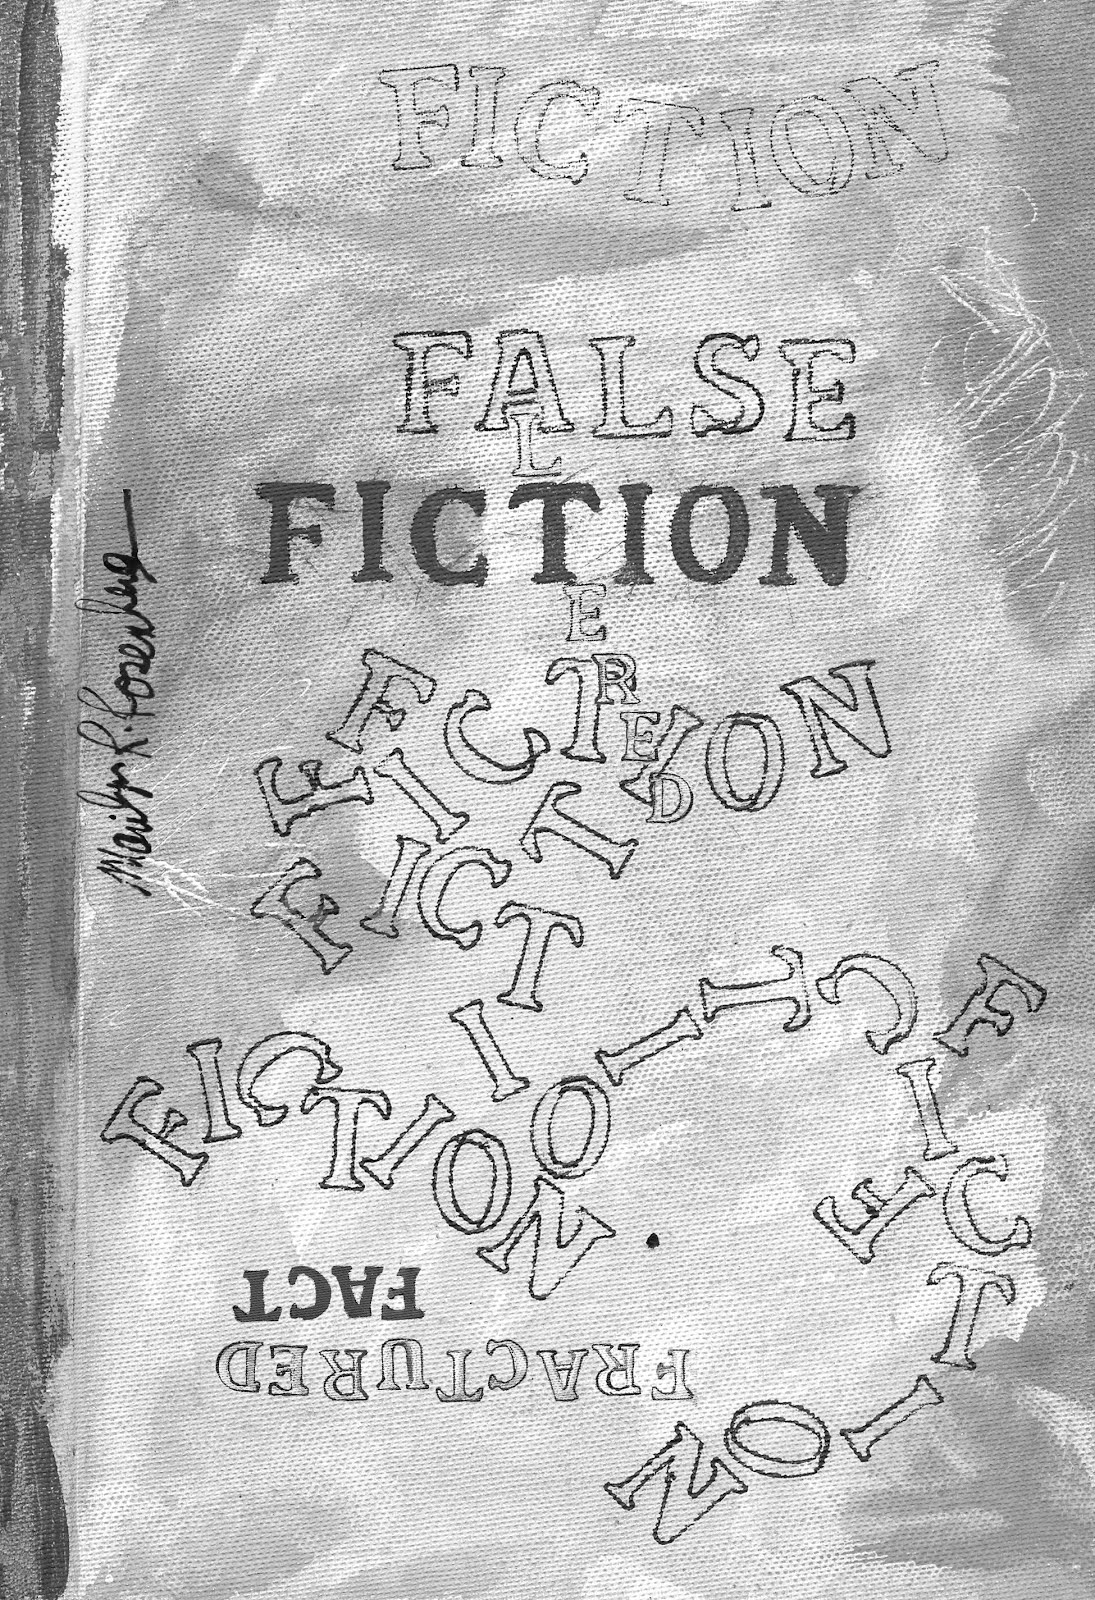 Coming Soon in Autumn of 2018!  FALSE FICTION FRACTURED FACT ALTERED by Marilyn R. Rosenberg